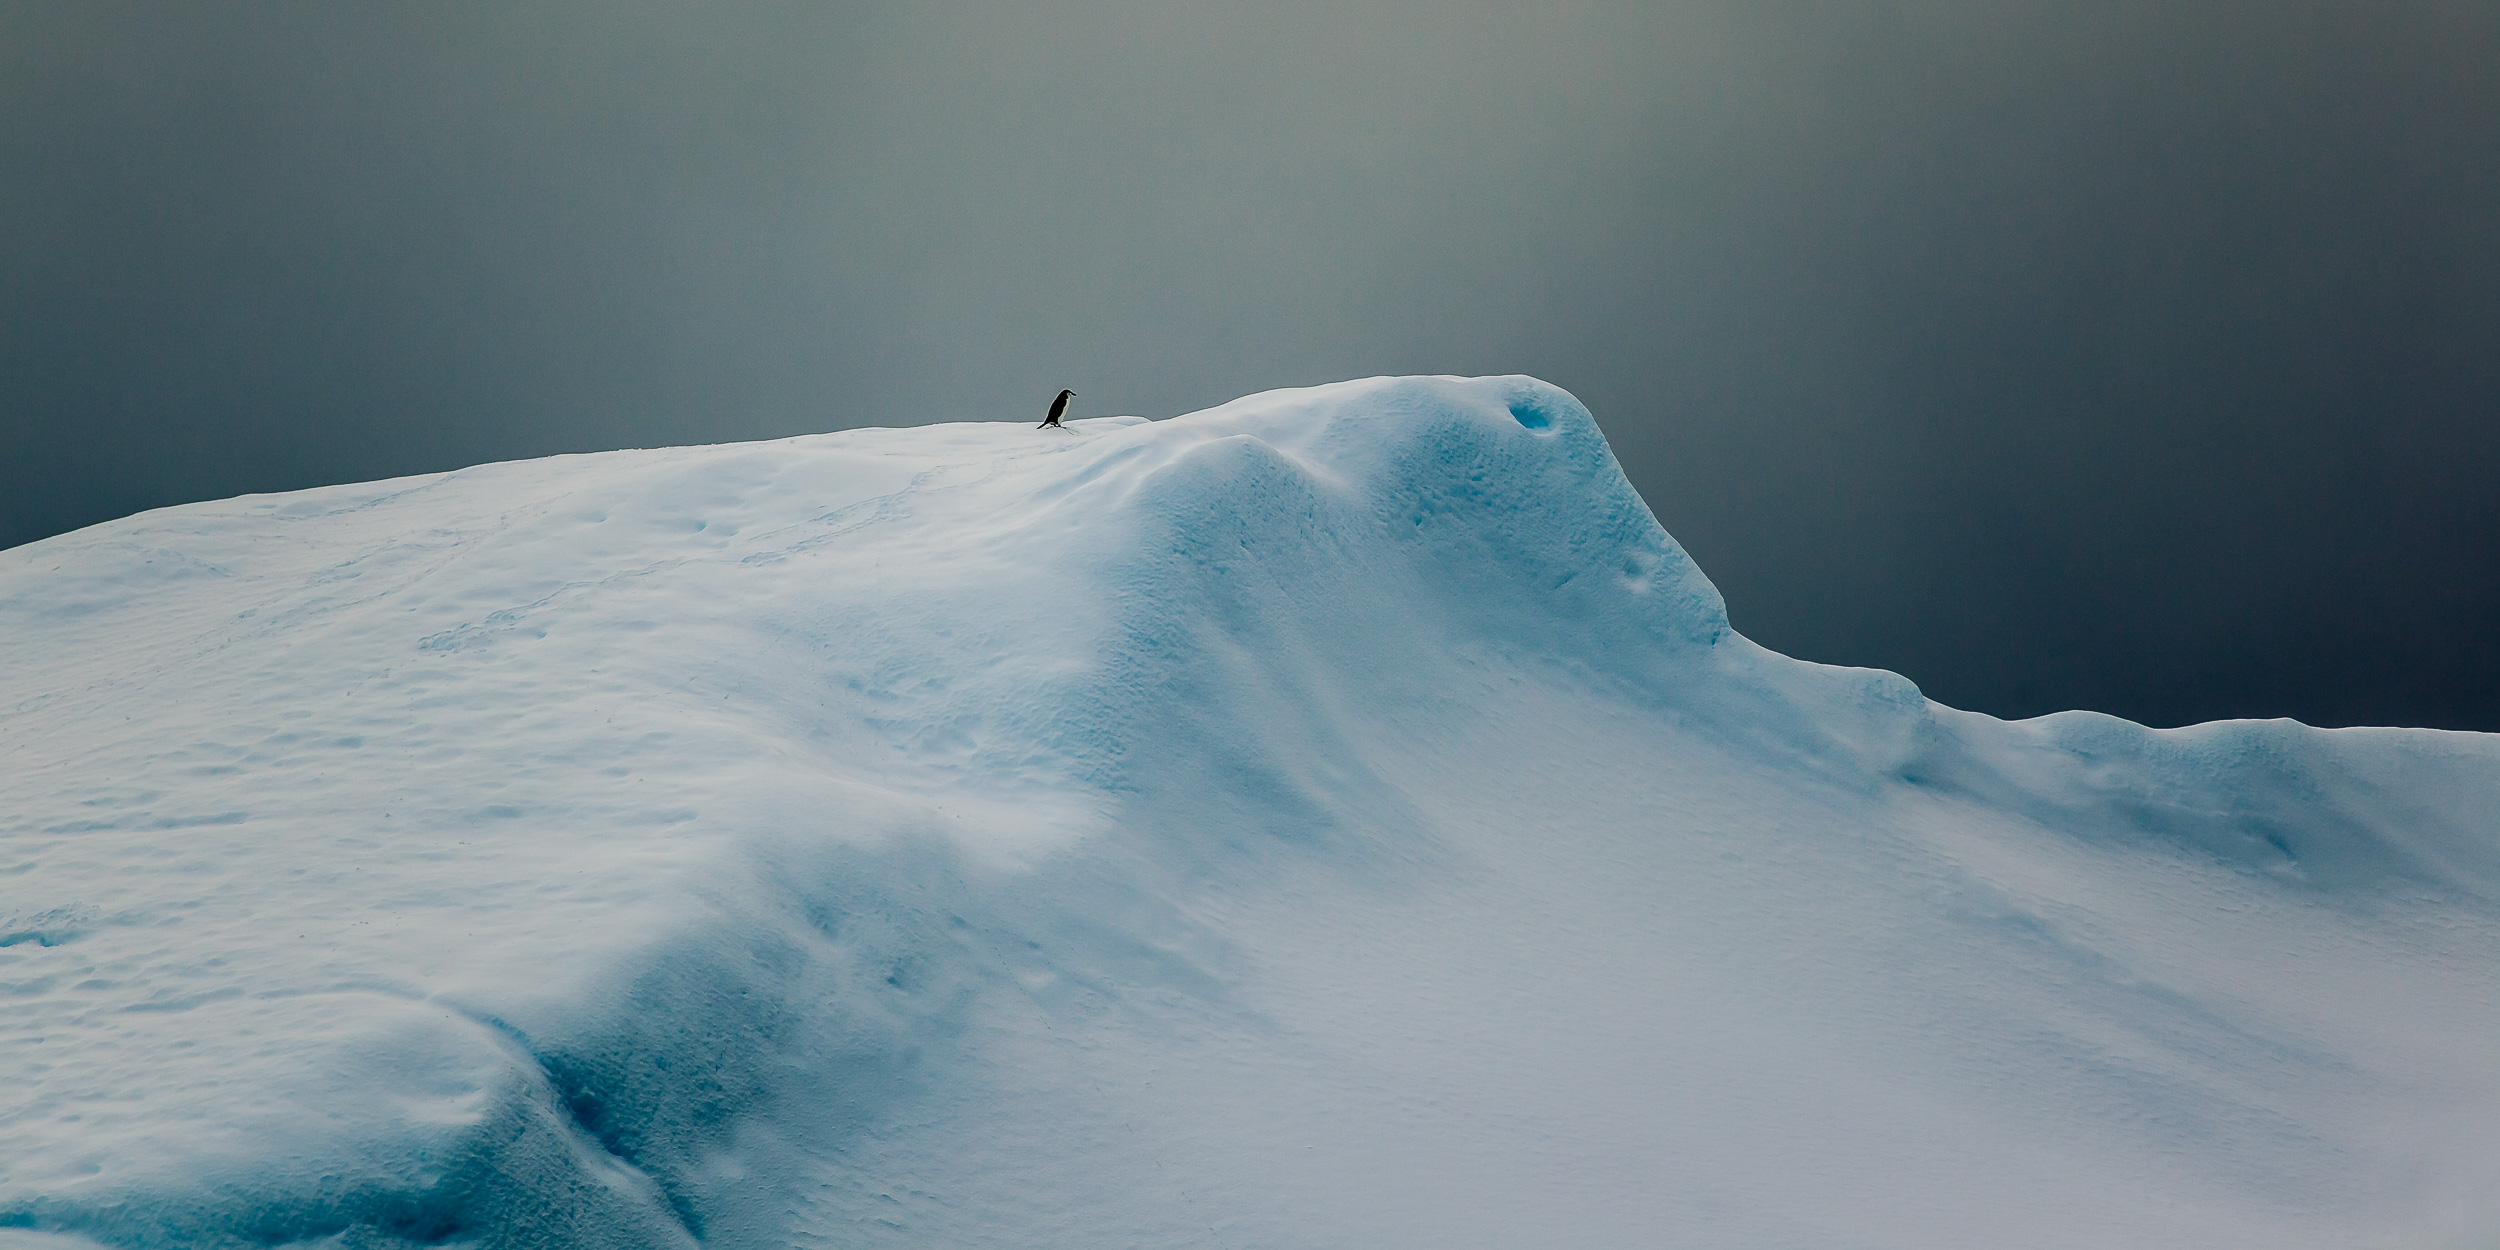 A  penguin  climbs to the top of an ice covered hillside on  Cuverville Island, Antarctica .